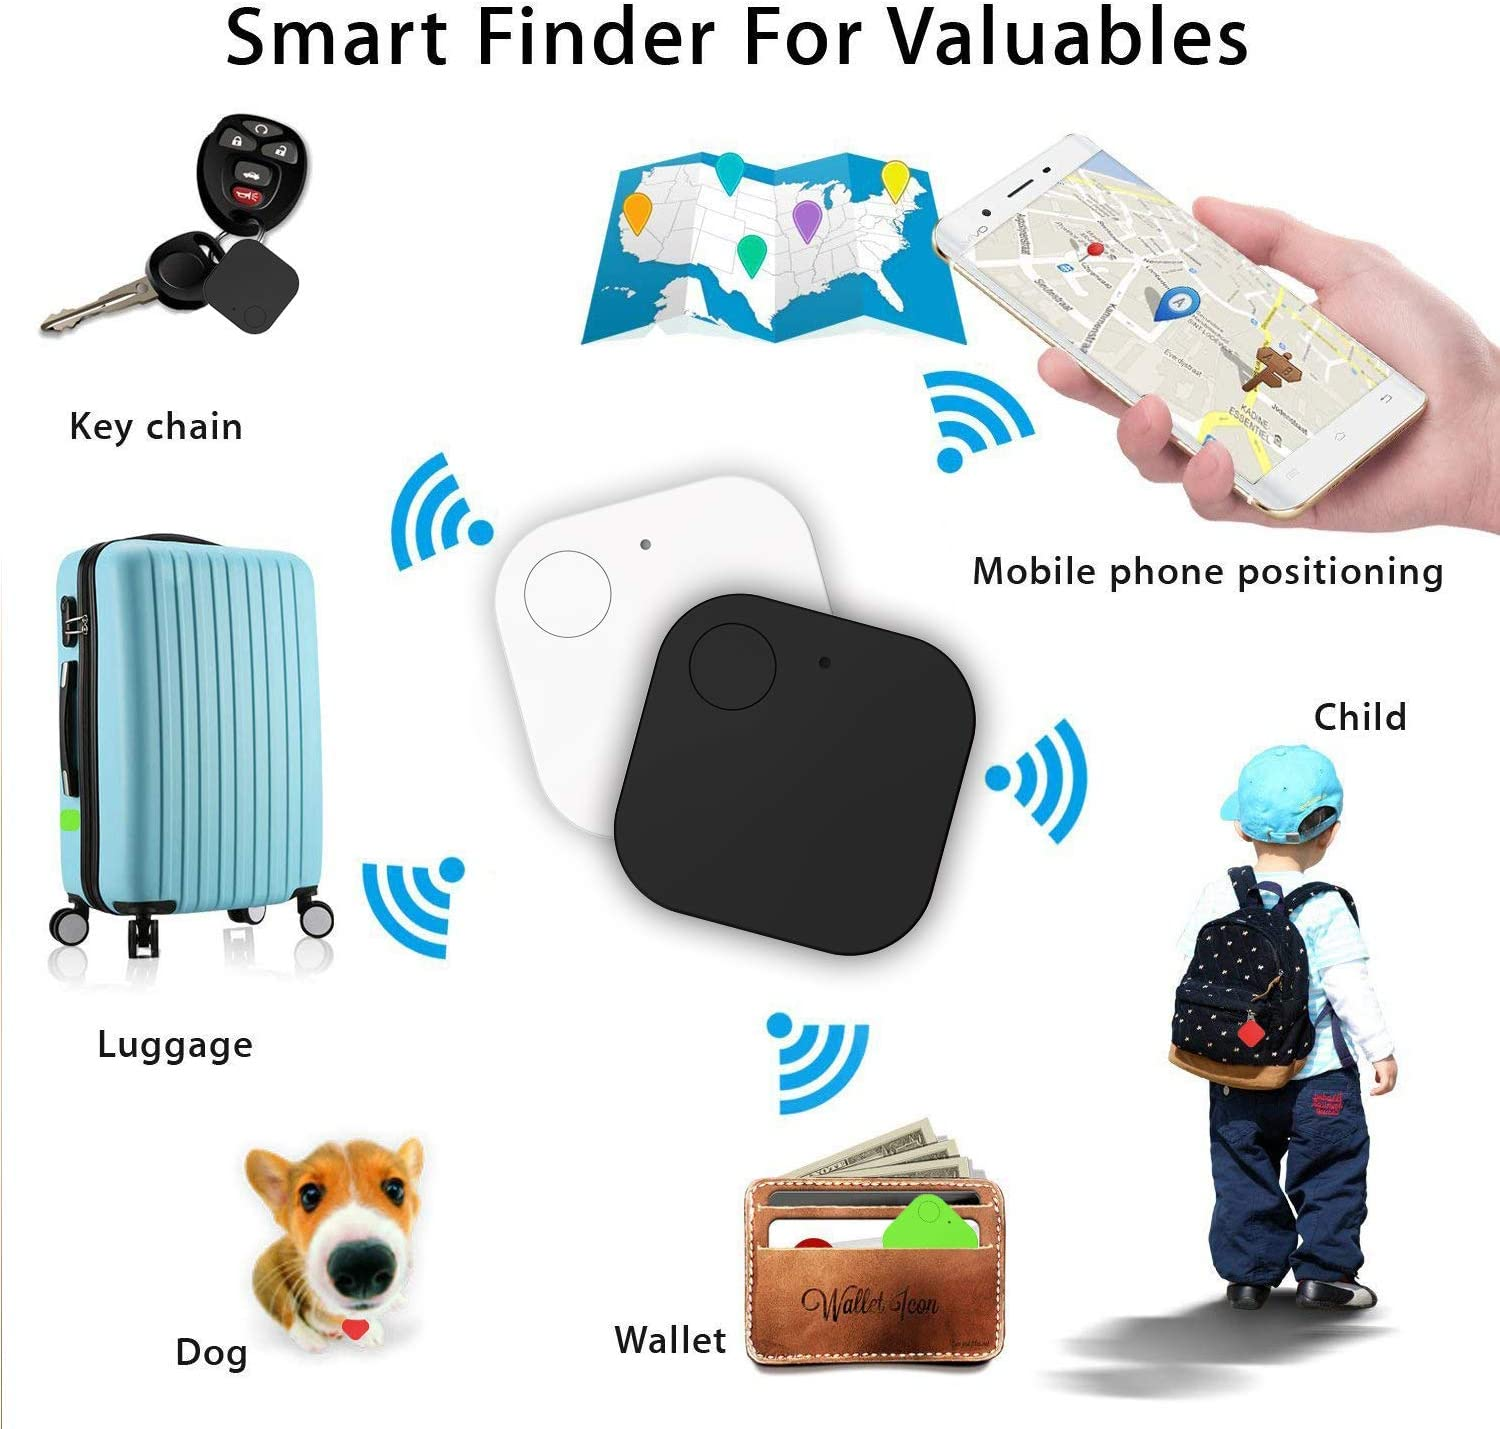 4Pack Bluetooth Tracker with Replaceable Battery Kimfly Key Finder Item Finder Smart Tracker Phone Finder